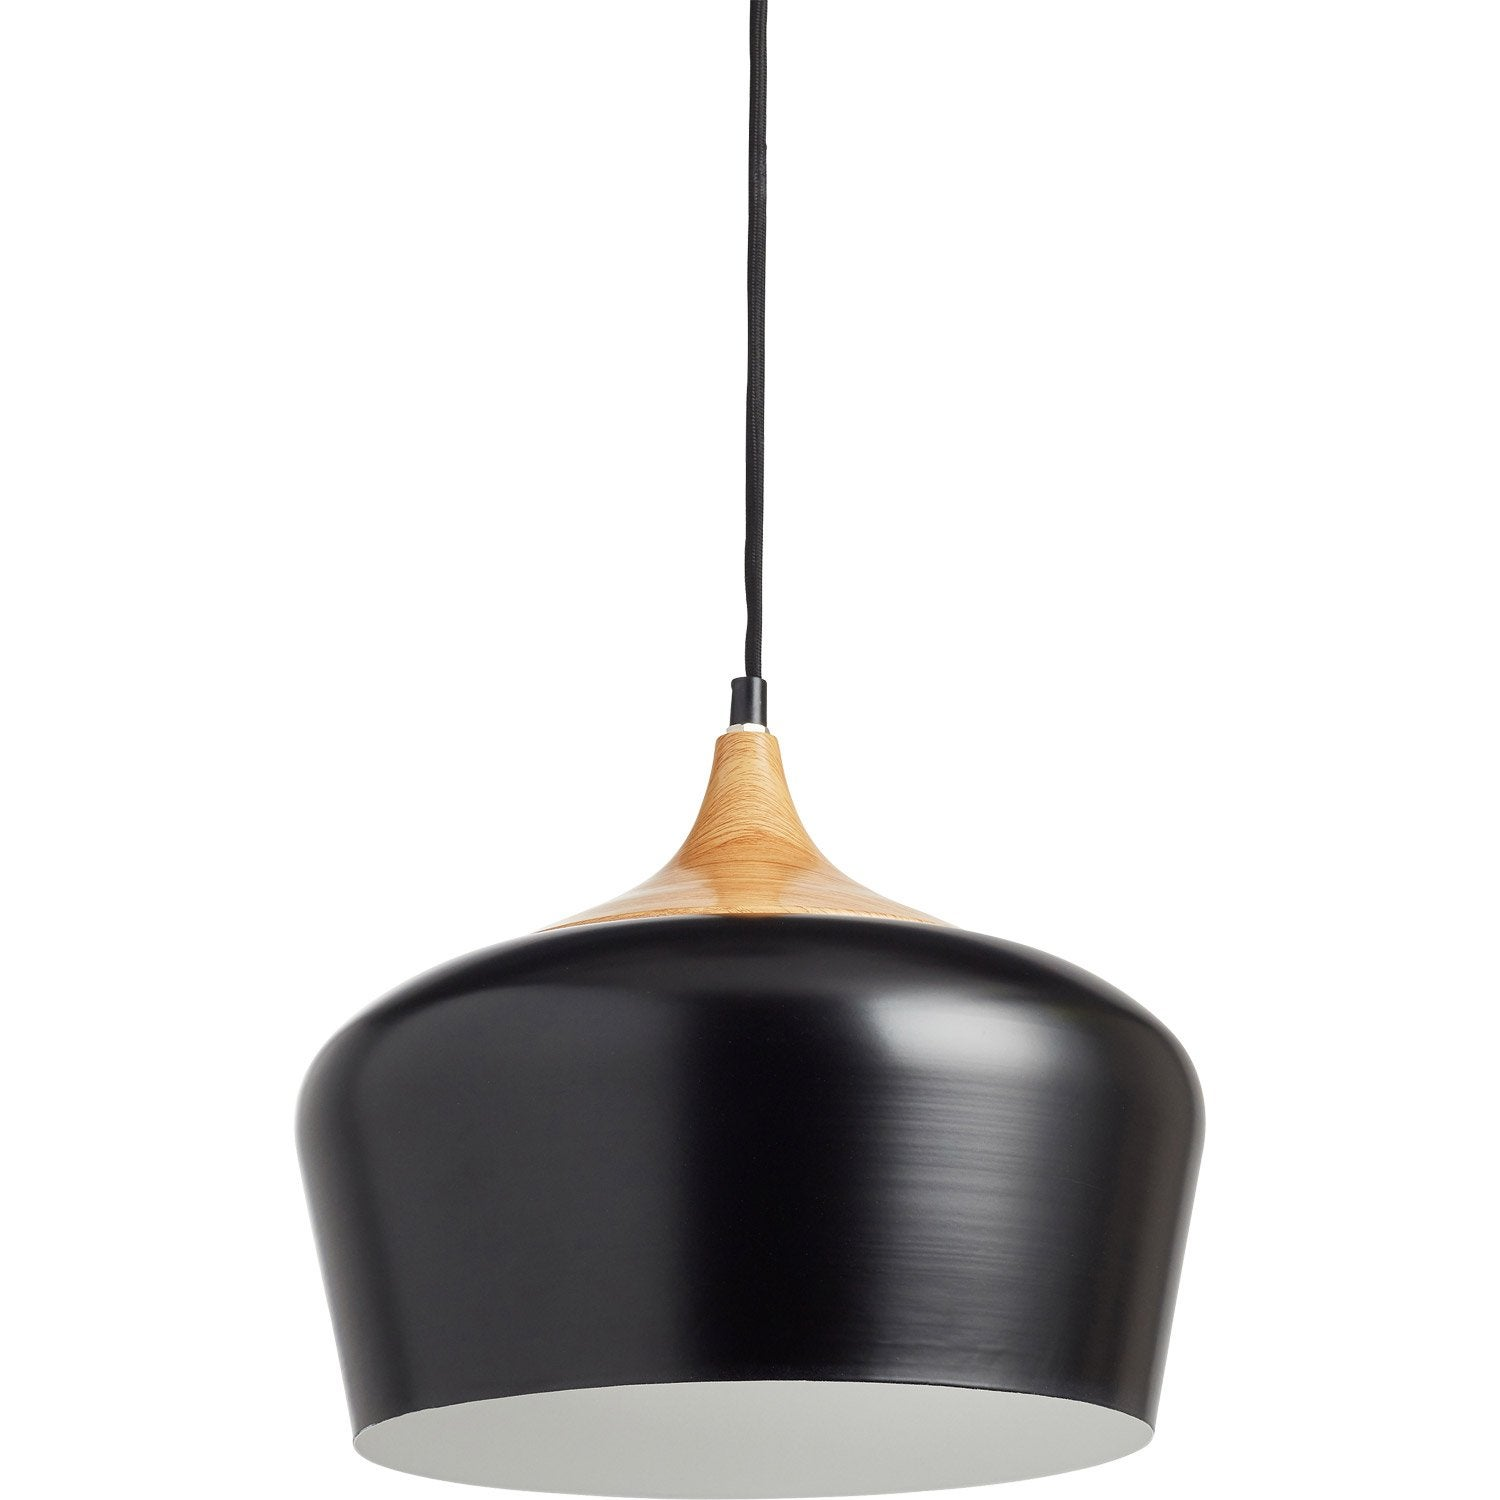 Suspension, e27 design Fresno métal noir 1 x 60 W INSPIRE